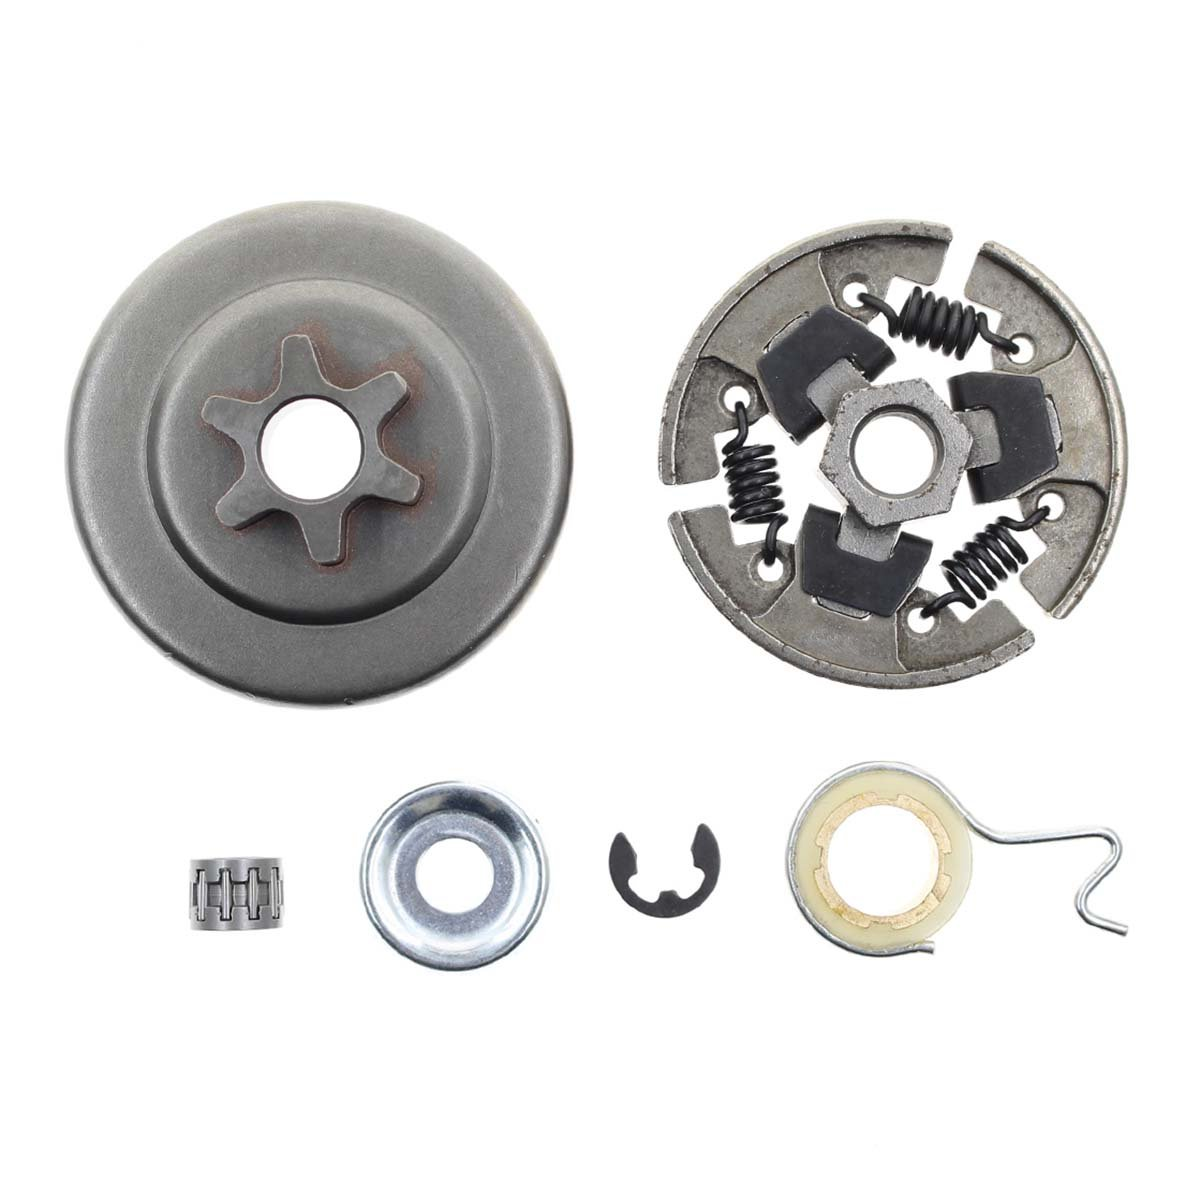 Carbhub Sprocket Clutch 3/8'' for Stihl 017 018 021 023 025 MS170 MS180 MS210 MS230 MS250 Chainsaw with Washer E-Clip Kit Replace 1123 640 2003, 1123 640 2073